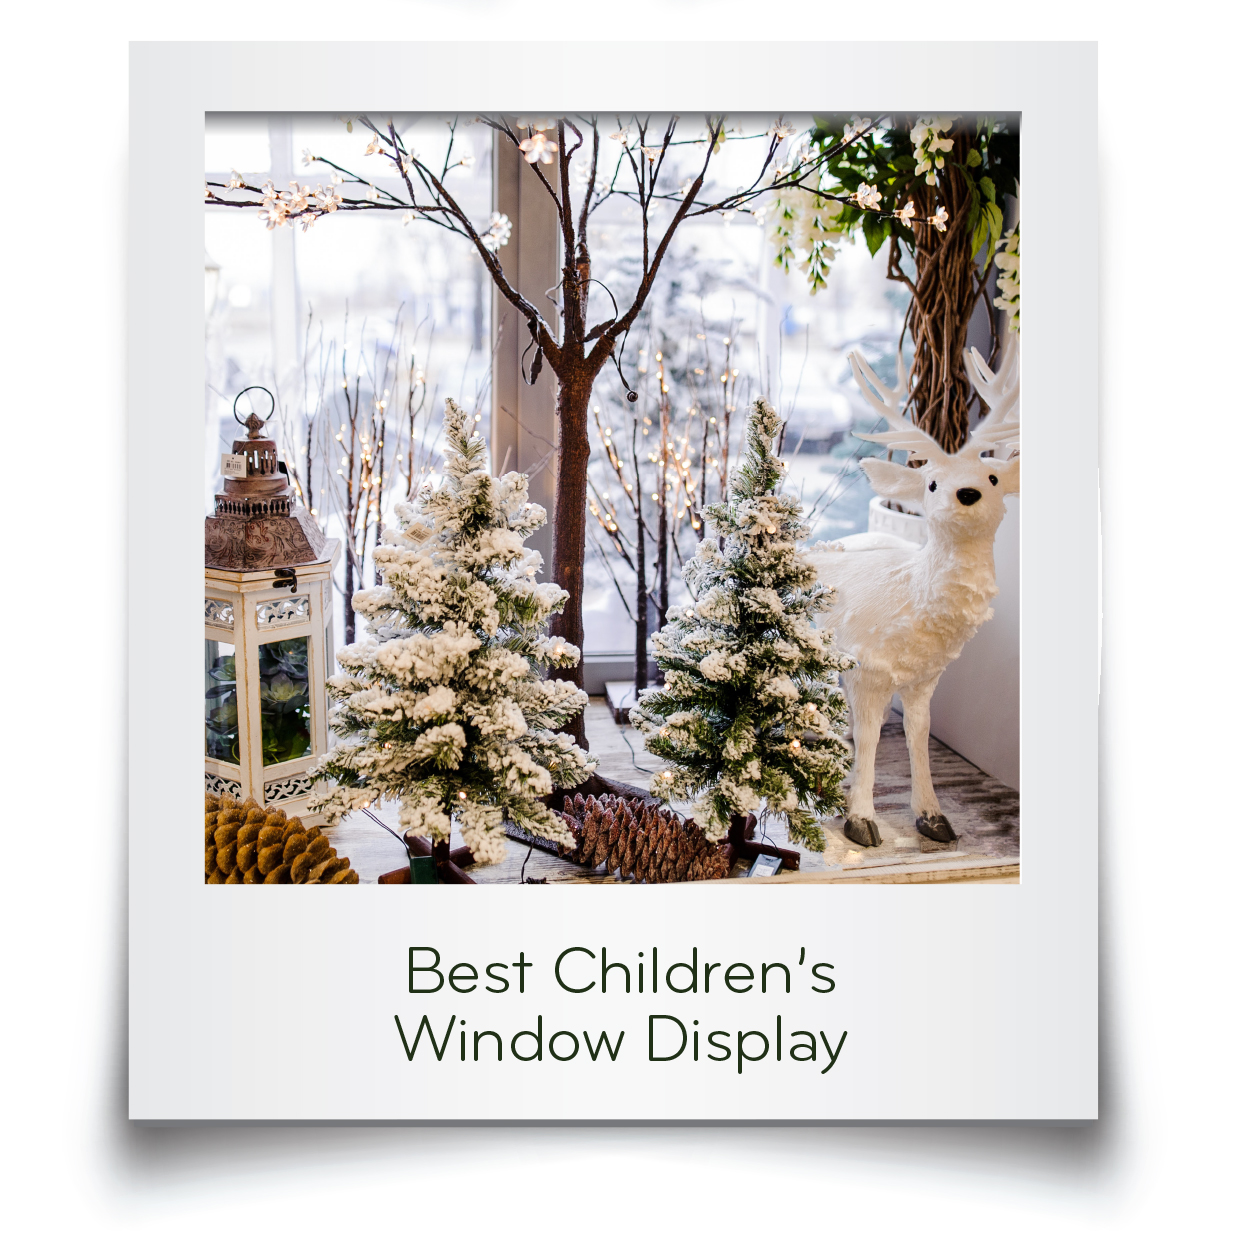 Best Childrens WIndow DIsplay Card